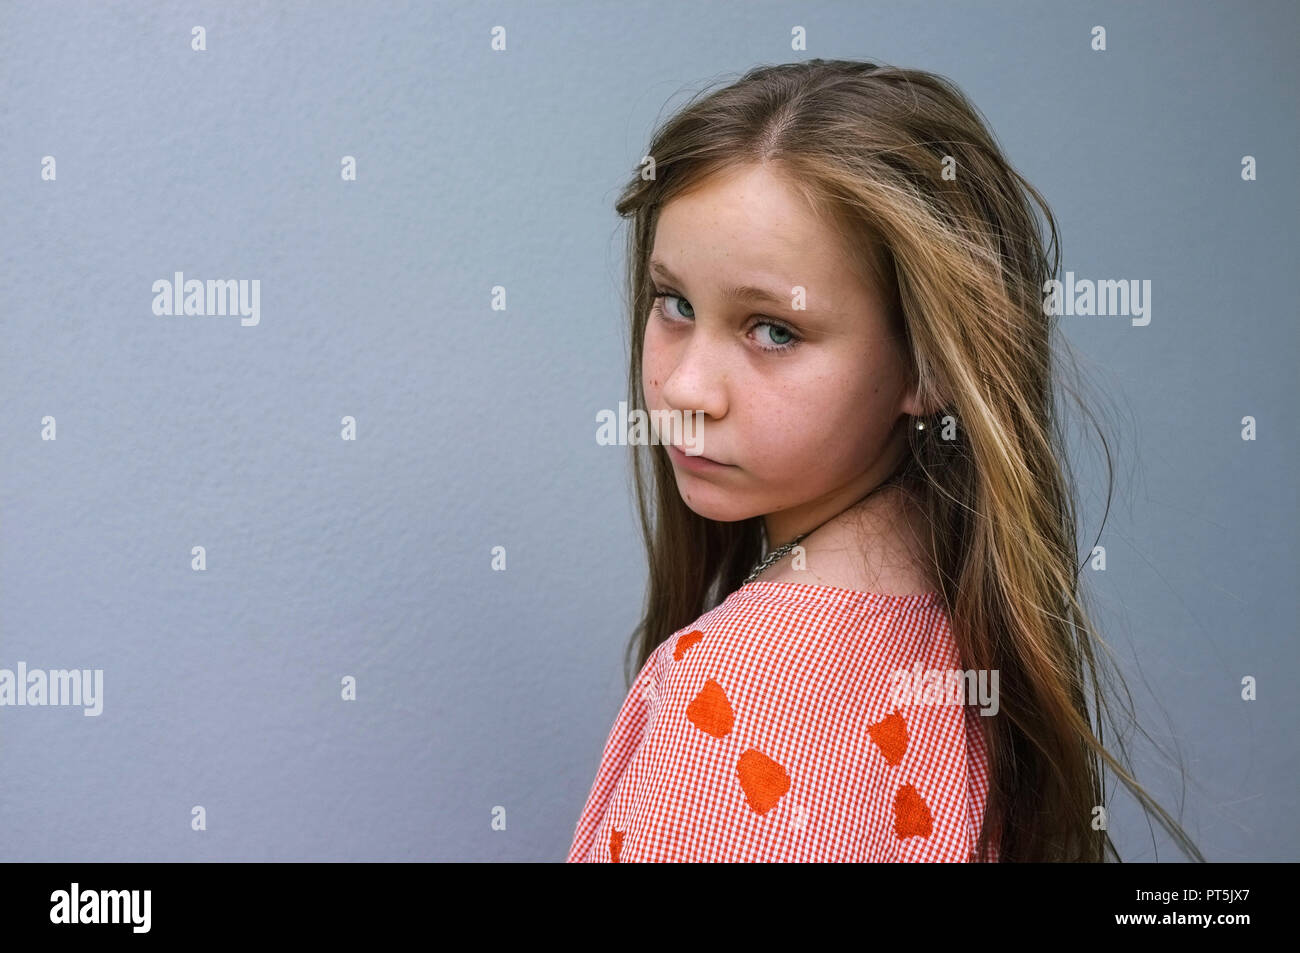 Portrait of a pre-teen girl looking over her shoulder, against a grey wall. Stock Photo